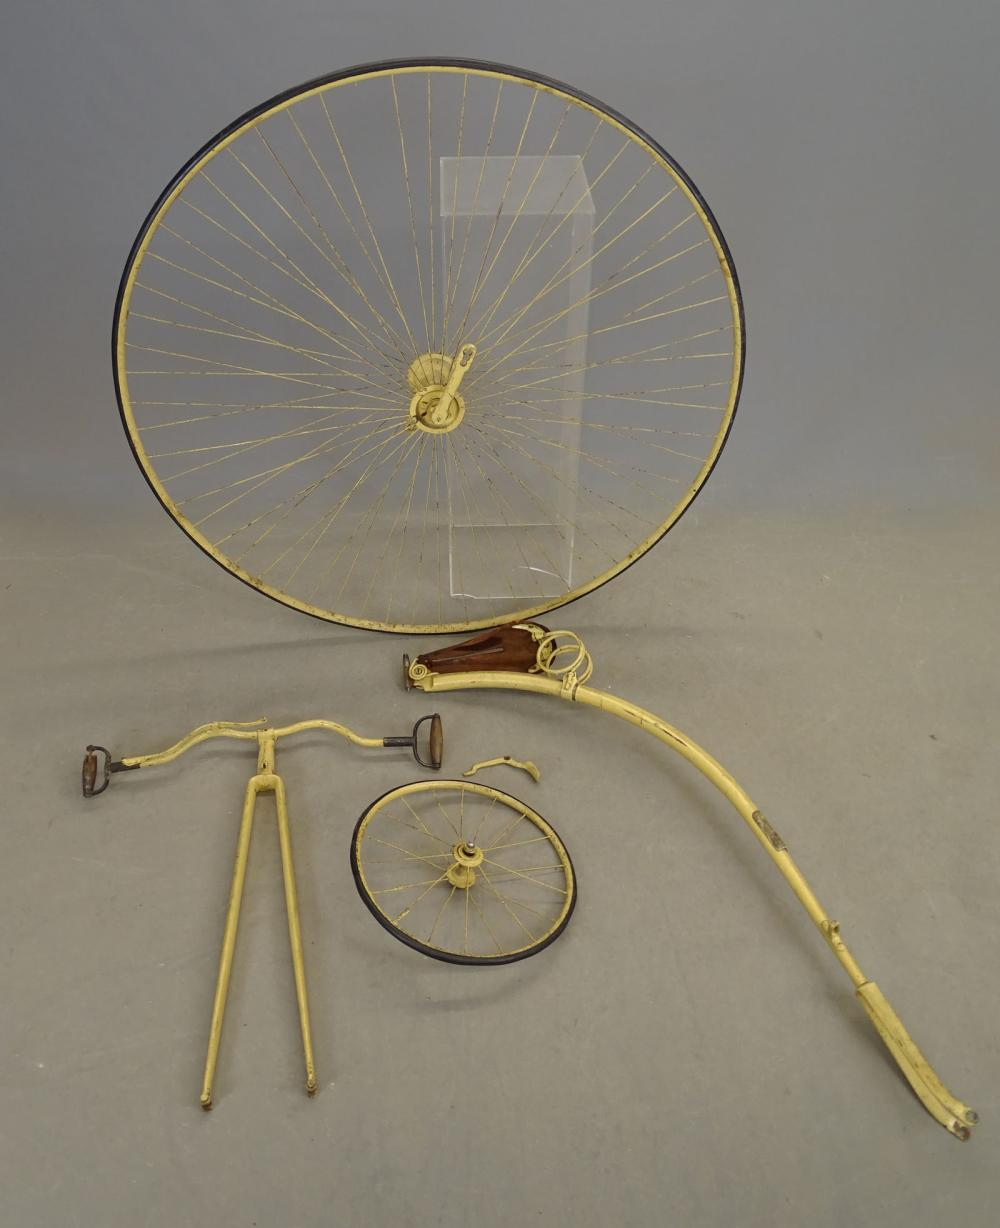 C. 1880's High Wheel Bicycle